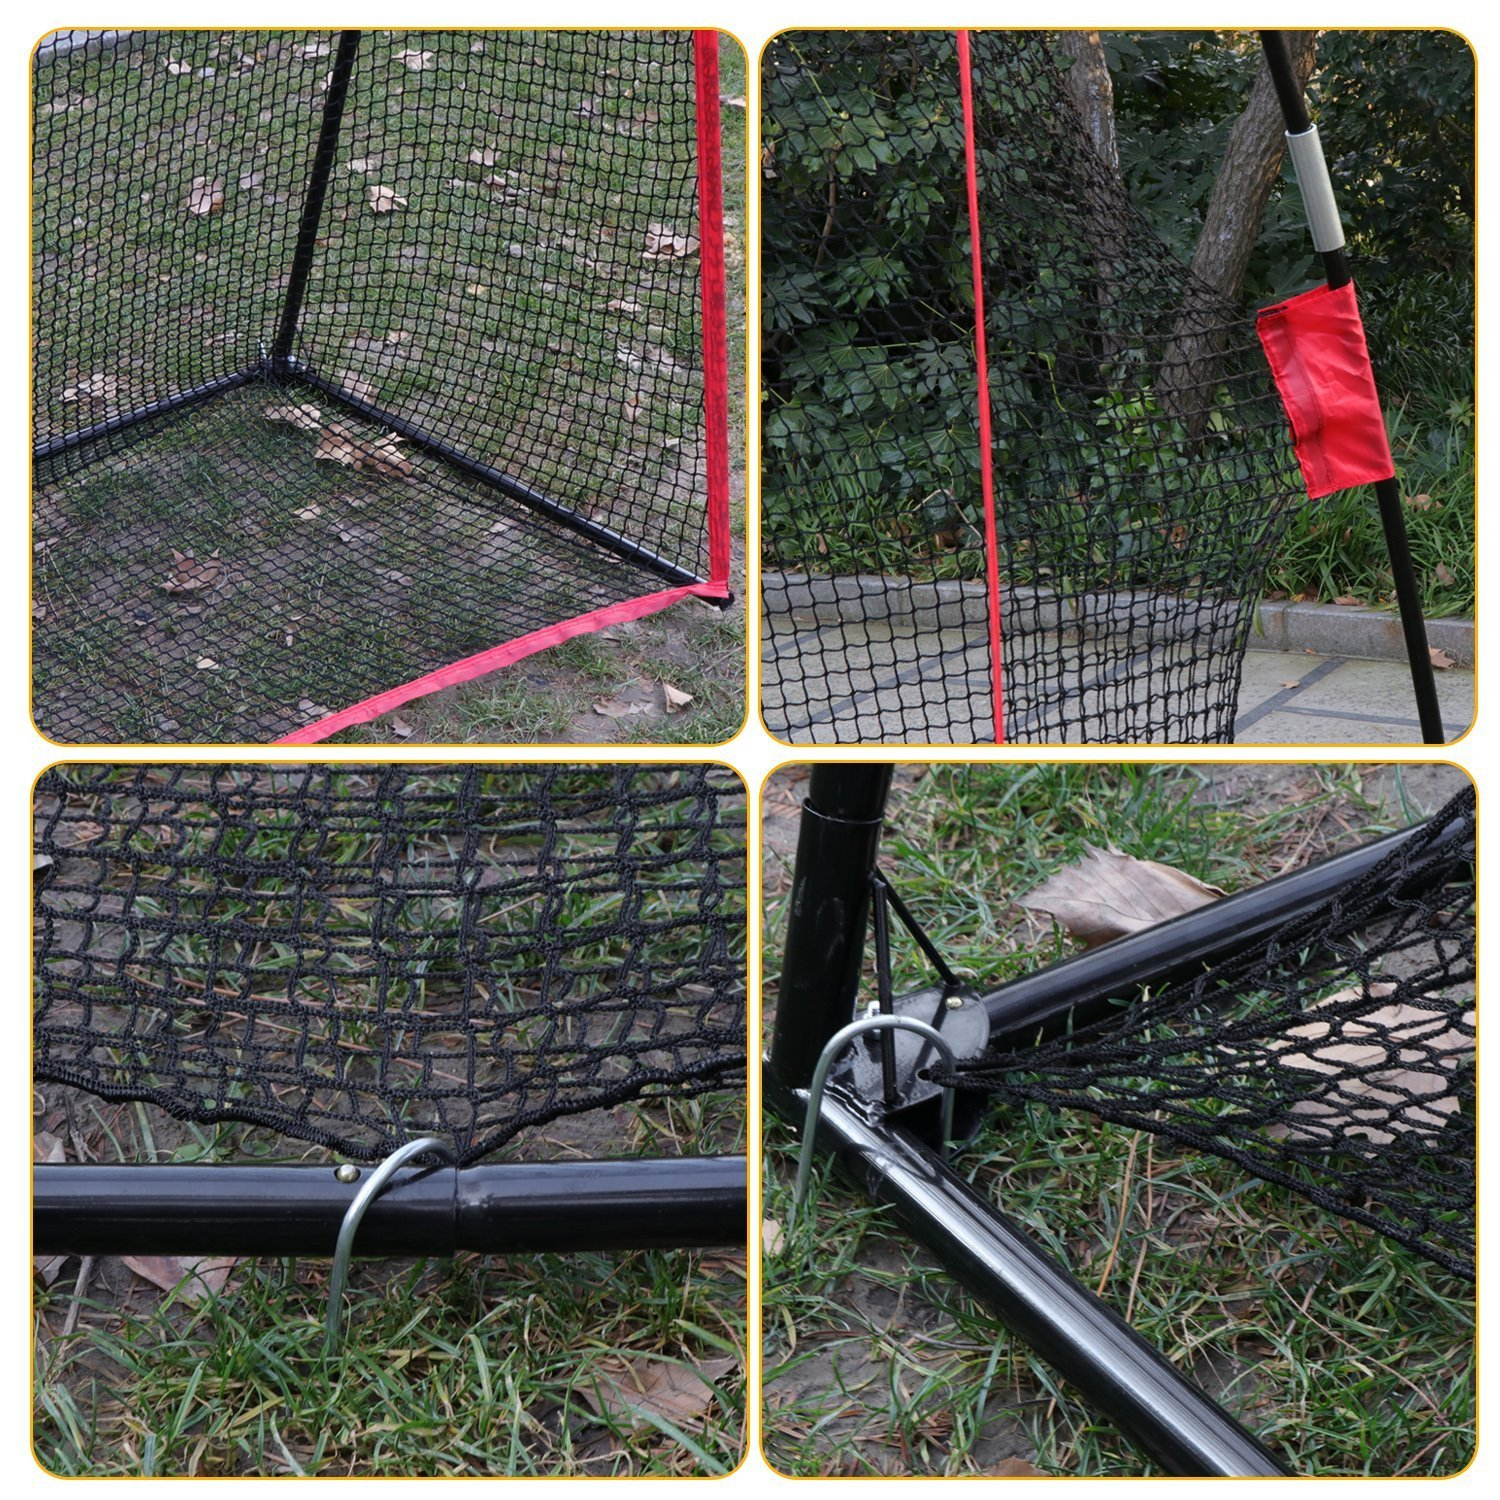 Fashine 10 x 7ft Golf/Baseball/ Soccer/Lacrosse Training Pitching Hitting Net Practice Driving Indoor and Outdoor with Bow Frame and Carrying Bag (US Stock) by Fashine (Image #5)